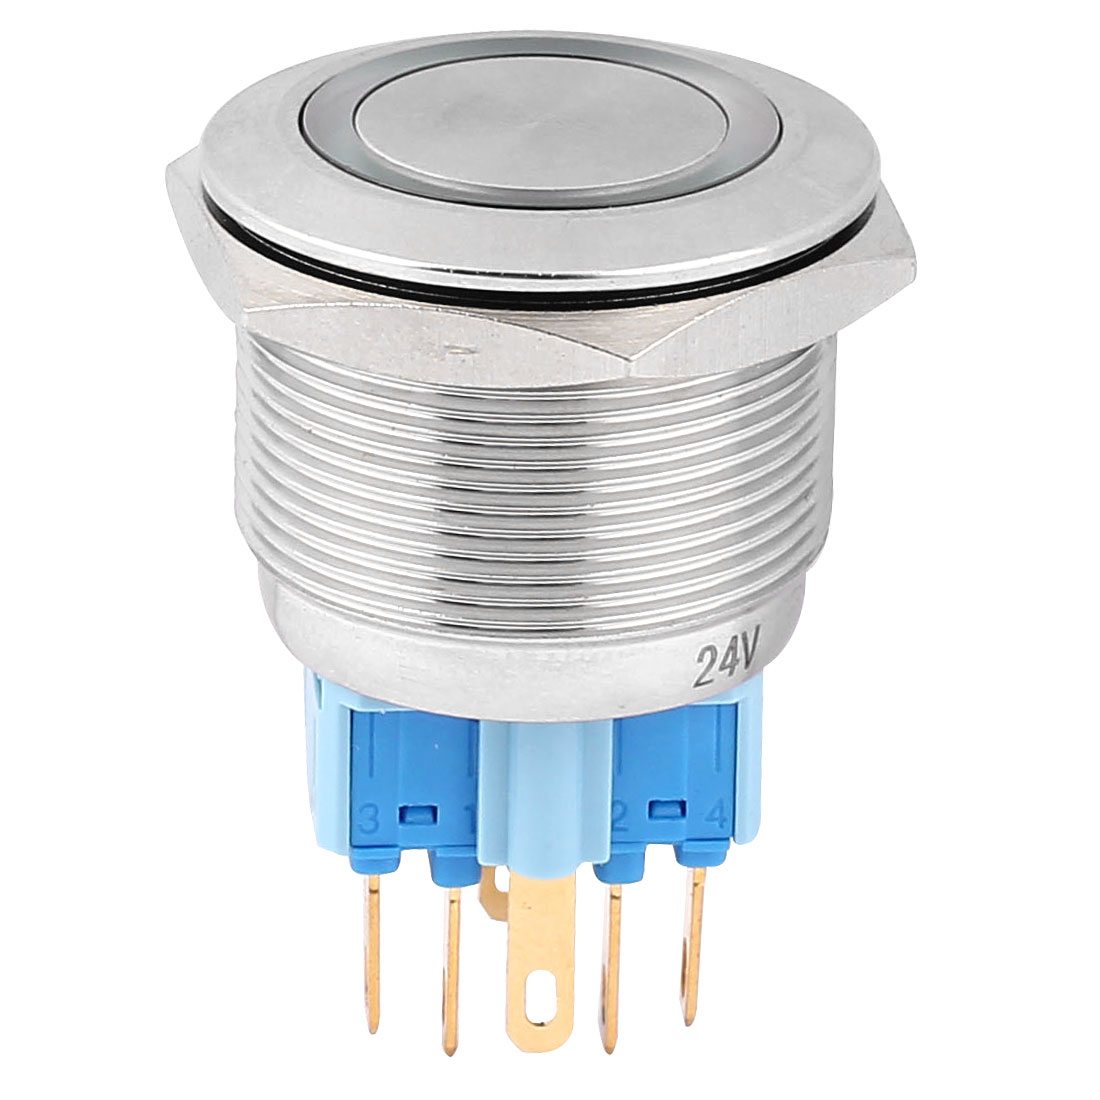 DC 24V 20mm Green LED Light 25mm Mounted Thread 6 Pins DPST NO/NC Momentary Push Button Switch